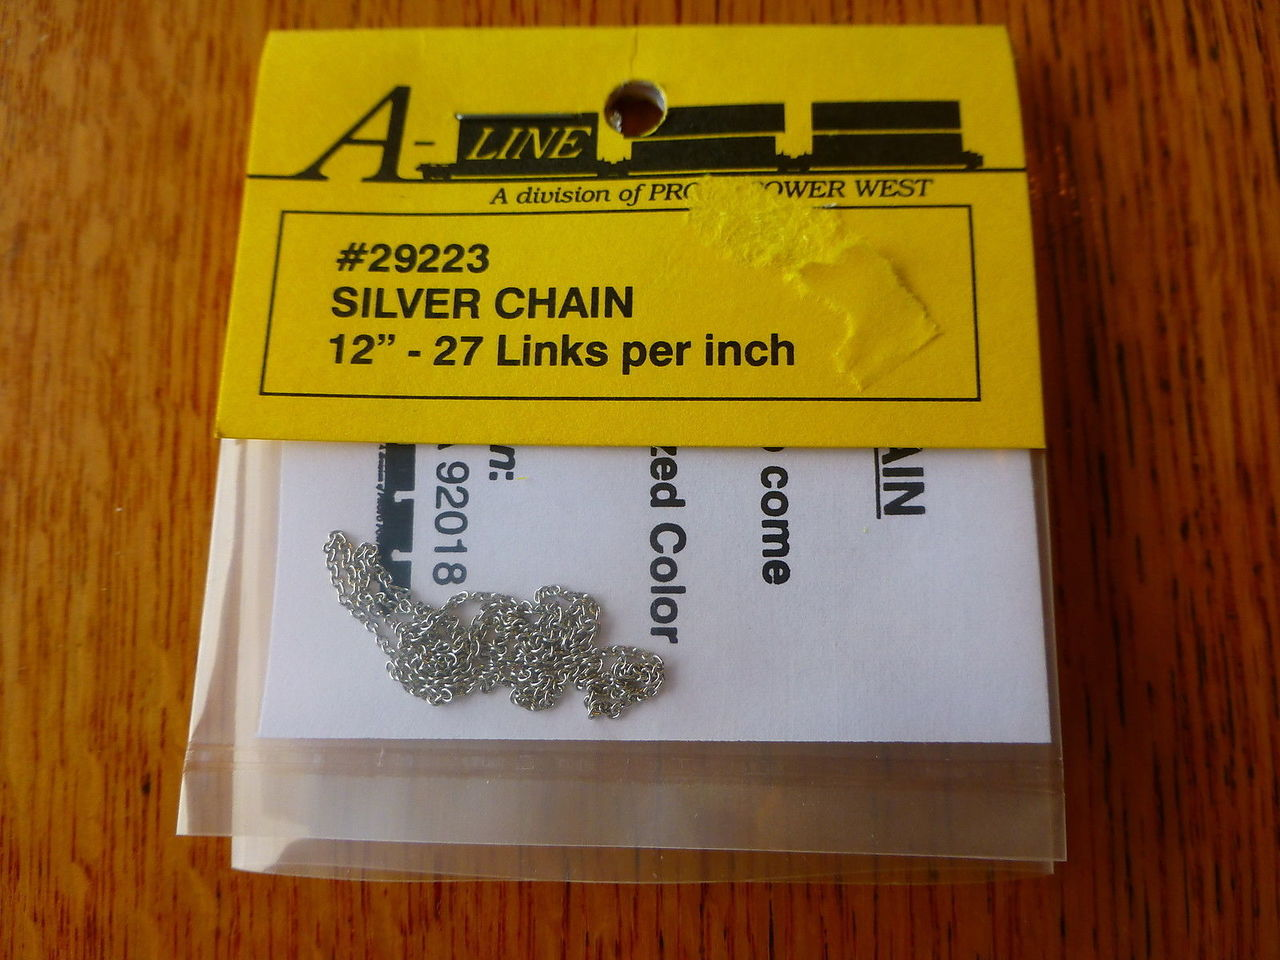 A-Line 29223 HO Silver Chain - 12 30.5cm 27 Links Per Inch This is an A-Line 29223 HO Scale Silver Chain - 12 30.5cm 27 Links Per Inch. Brass Chain (12) - Used to tie down open loads on freight cars, vehicle trailers and locomotive handrails. Brass chain is packaged in 12 inch lengths.Condition: Factory New (C-9All original; unused; factory rubs and evidence of handling, shipping and factory test run.Standards for all toy train related accessory items apply to the visual appearance of the item and do not consider the operating functionality of the equipment.Condition and Grading Standards are subjective, at best, and are intended to act as a guide. )Operational Status: FunctionalThis item is brand new from the factory.Original Box: Yes (P-9May have store stamps and price tags. Has inner liners.)Manufacturer: A-LineModel Number: 29223MSRP: $4.95Scale/Era: HO ModernModel Type: AccessoriesAvailability: Ships in 3 to 5 Business Days.The Trainz SKU for this item is P11973130. Track: 11973130 - FS - 001 - TrainzAuctionGroup00UNK - TDIDUNK